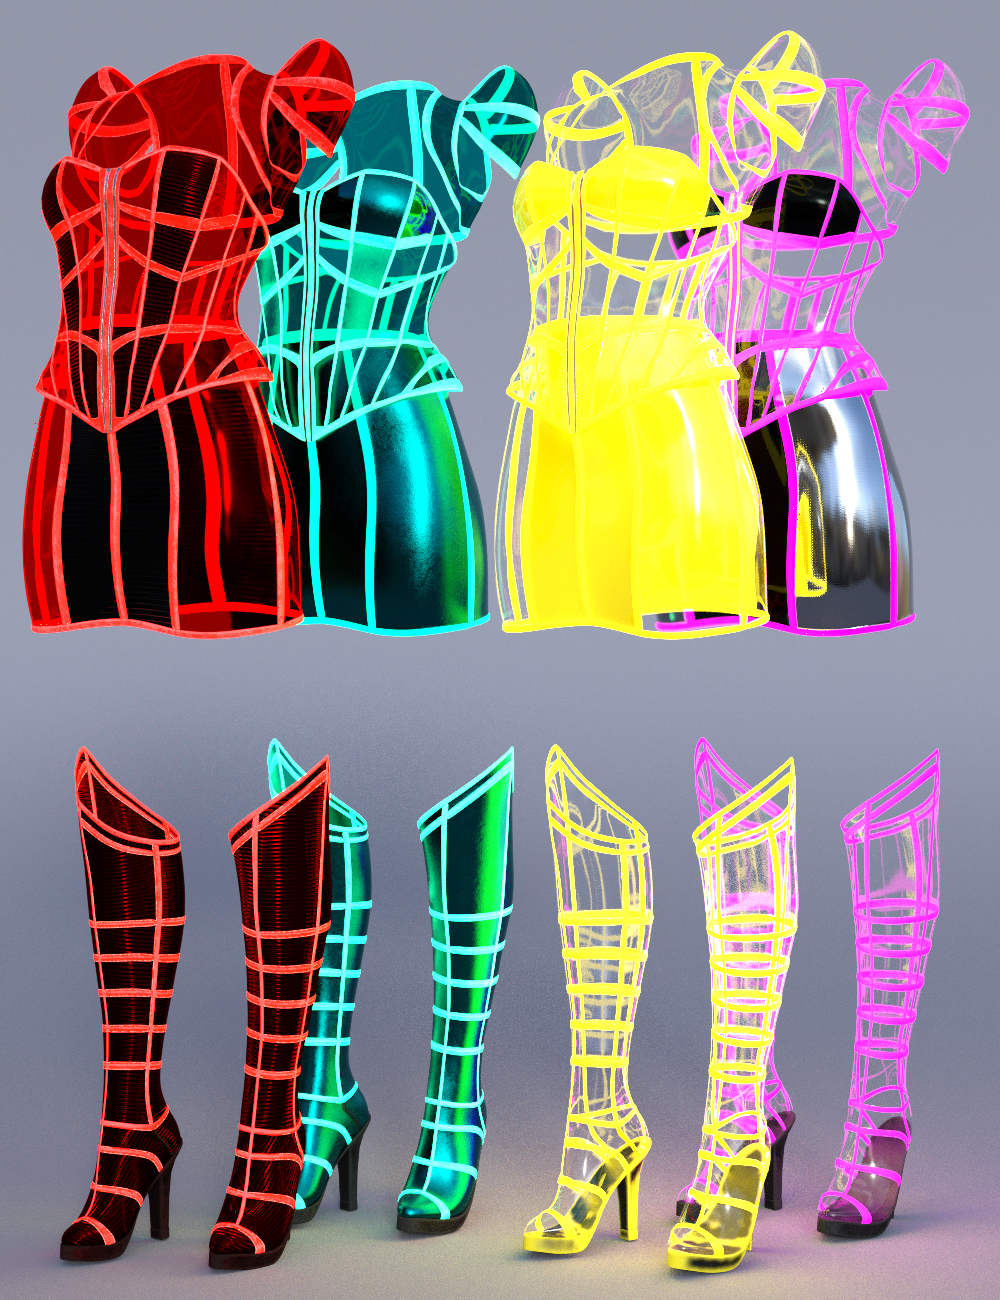 Neon Dream Outfit Textures by: Moonscape GraphicsSade, 3D Models by Daz 3D